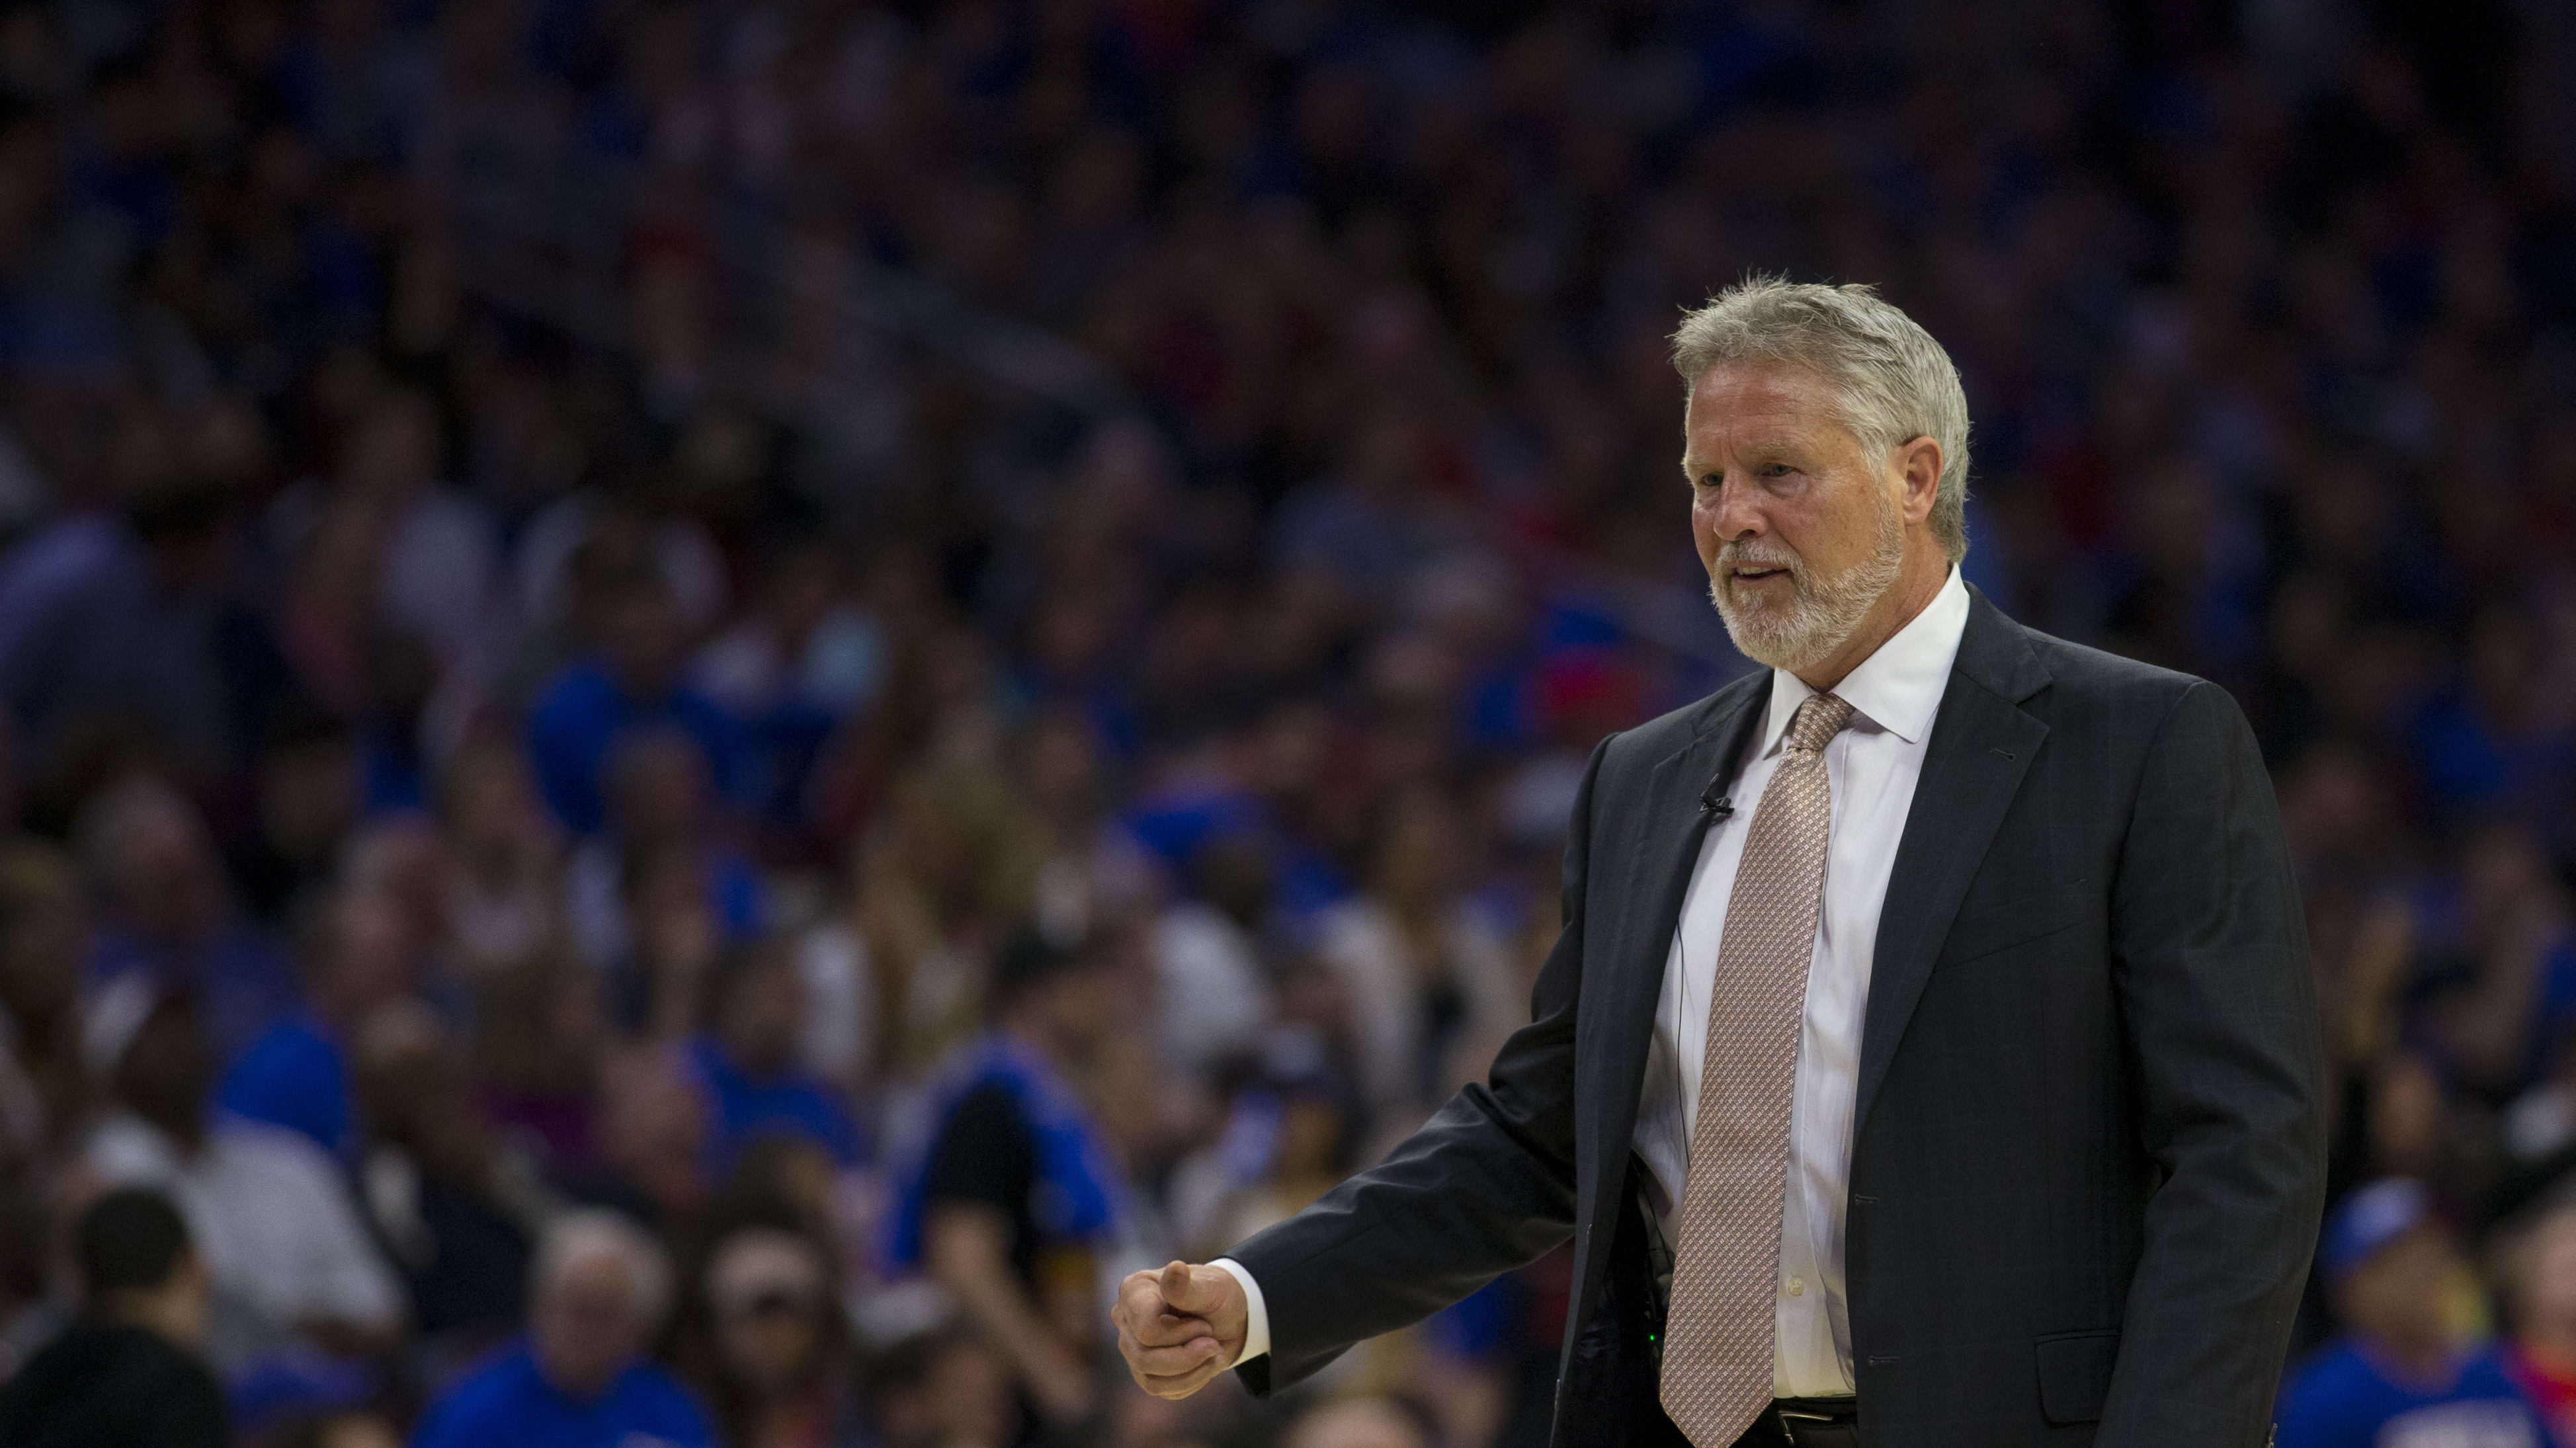 PHILADELPHIA, PA - MAY 02: Head coach Brett Brown of the Philadelphia 76ers reacts against the Toronto Raptors in Game Three of the Eastern Conference Semifinals at the Wells Fargo Center on May 2, 2019 in Philadelphia, Pennsylvania. The 76ers defeated the Raptors 116-95. NOTE TO USER: User expressly acknowledges and agrees that, by downloading and or using this photograph, User is consenting to the terms and conditions of the Getty Images License Agreement. (Photo by Mitchell Leff/Getty Images)